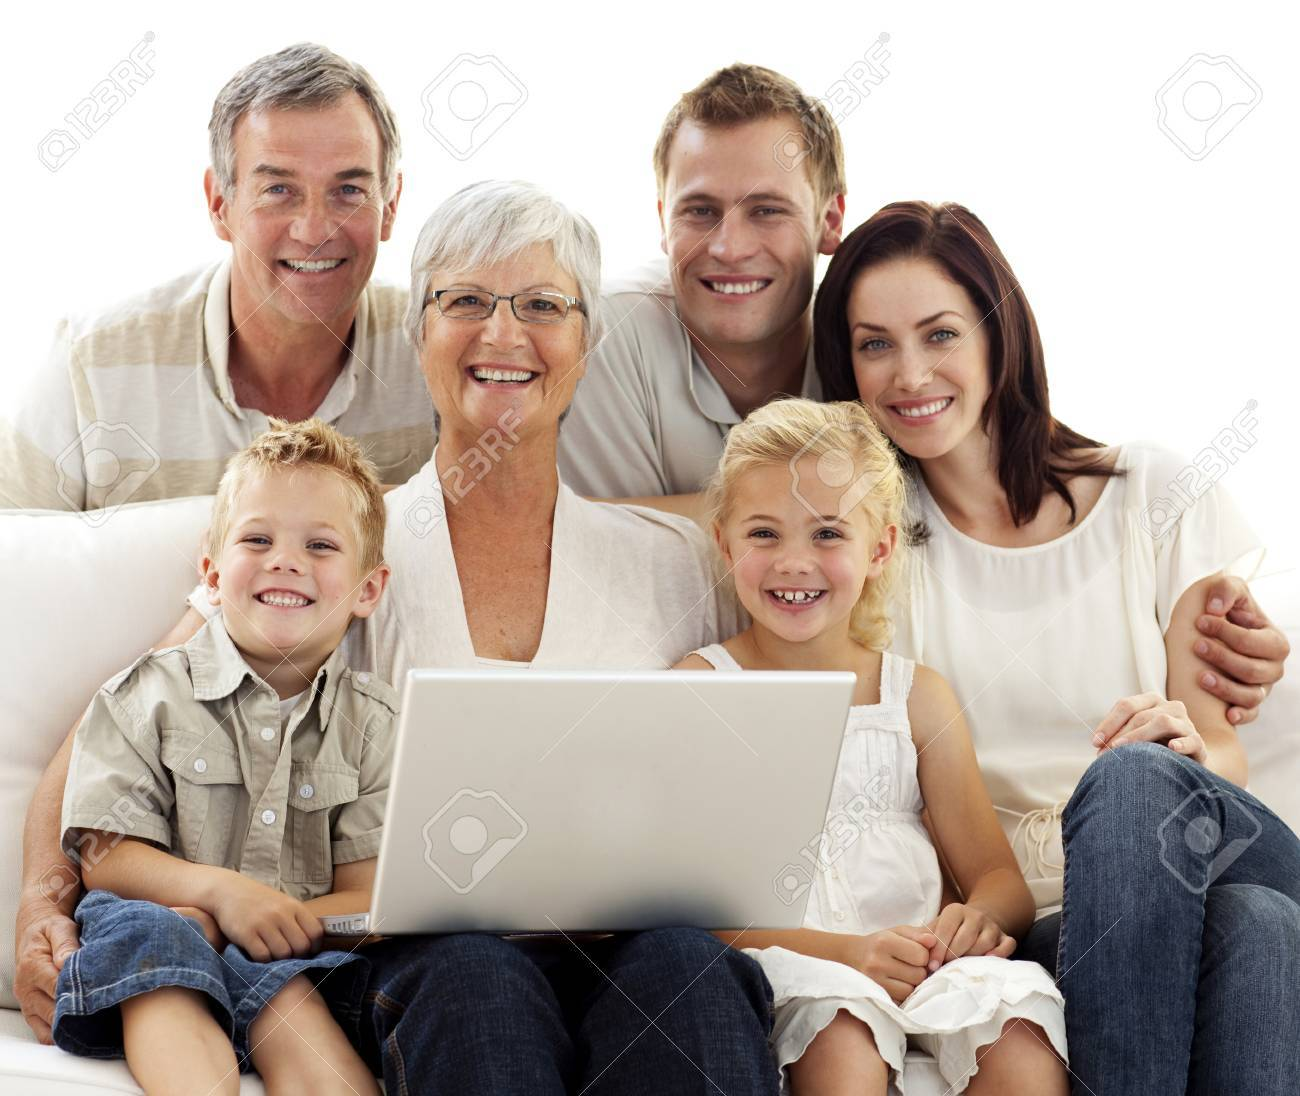 Smiling family using a laptop at home Stock Photo - 10094664